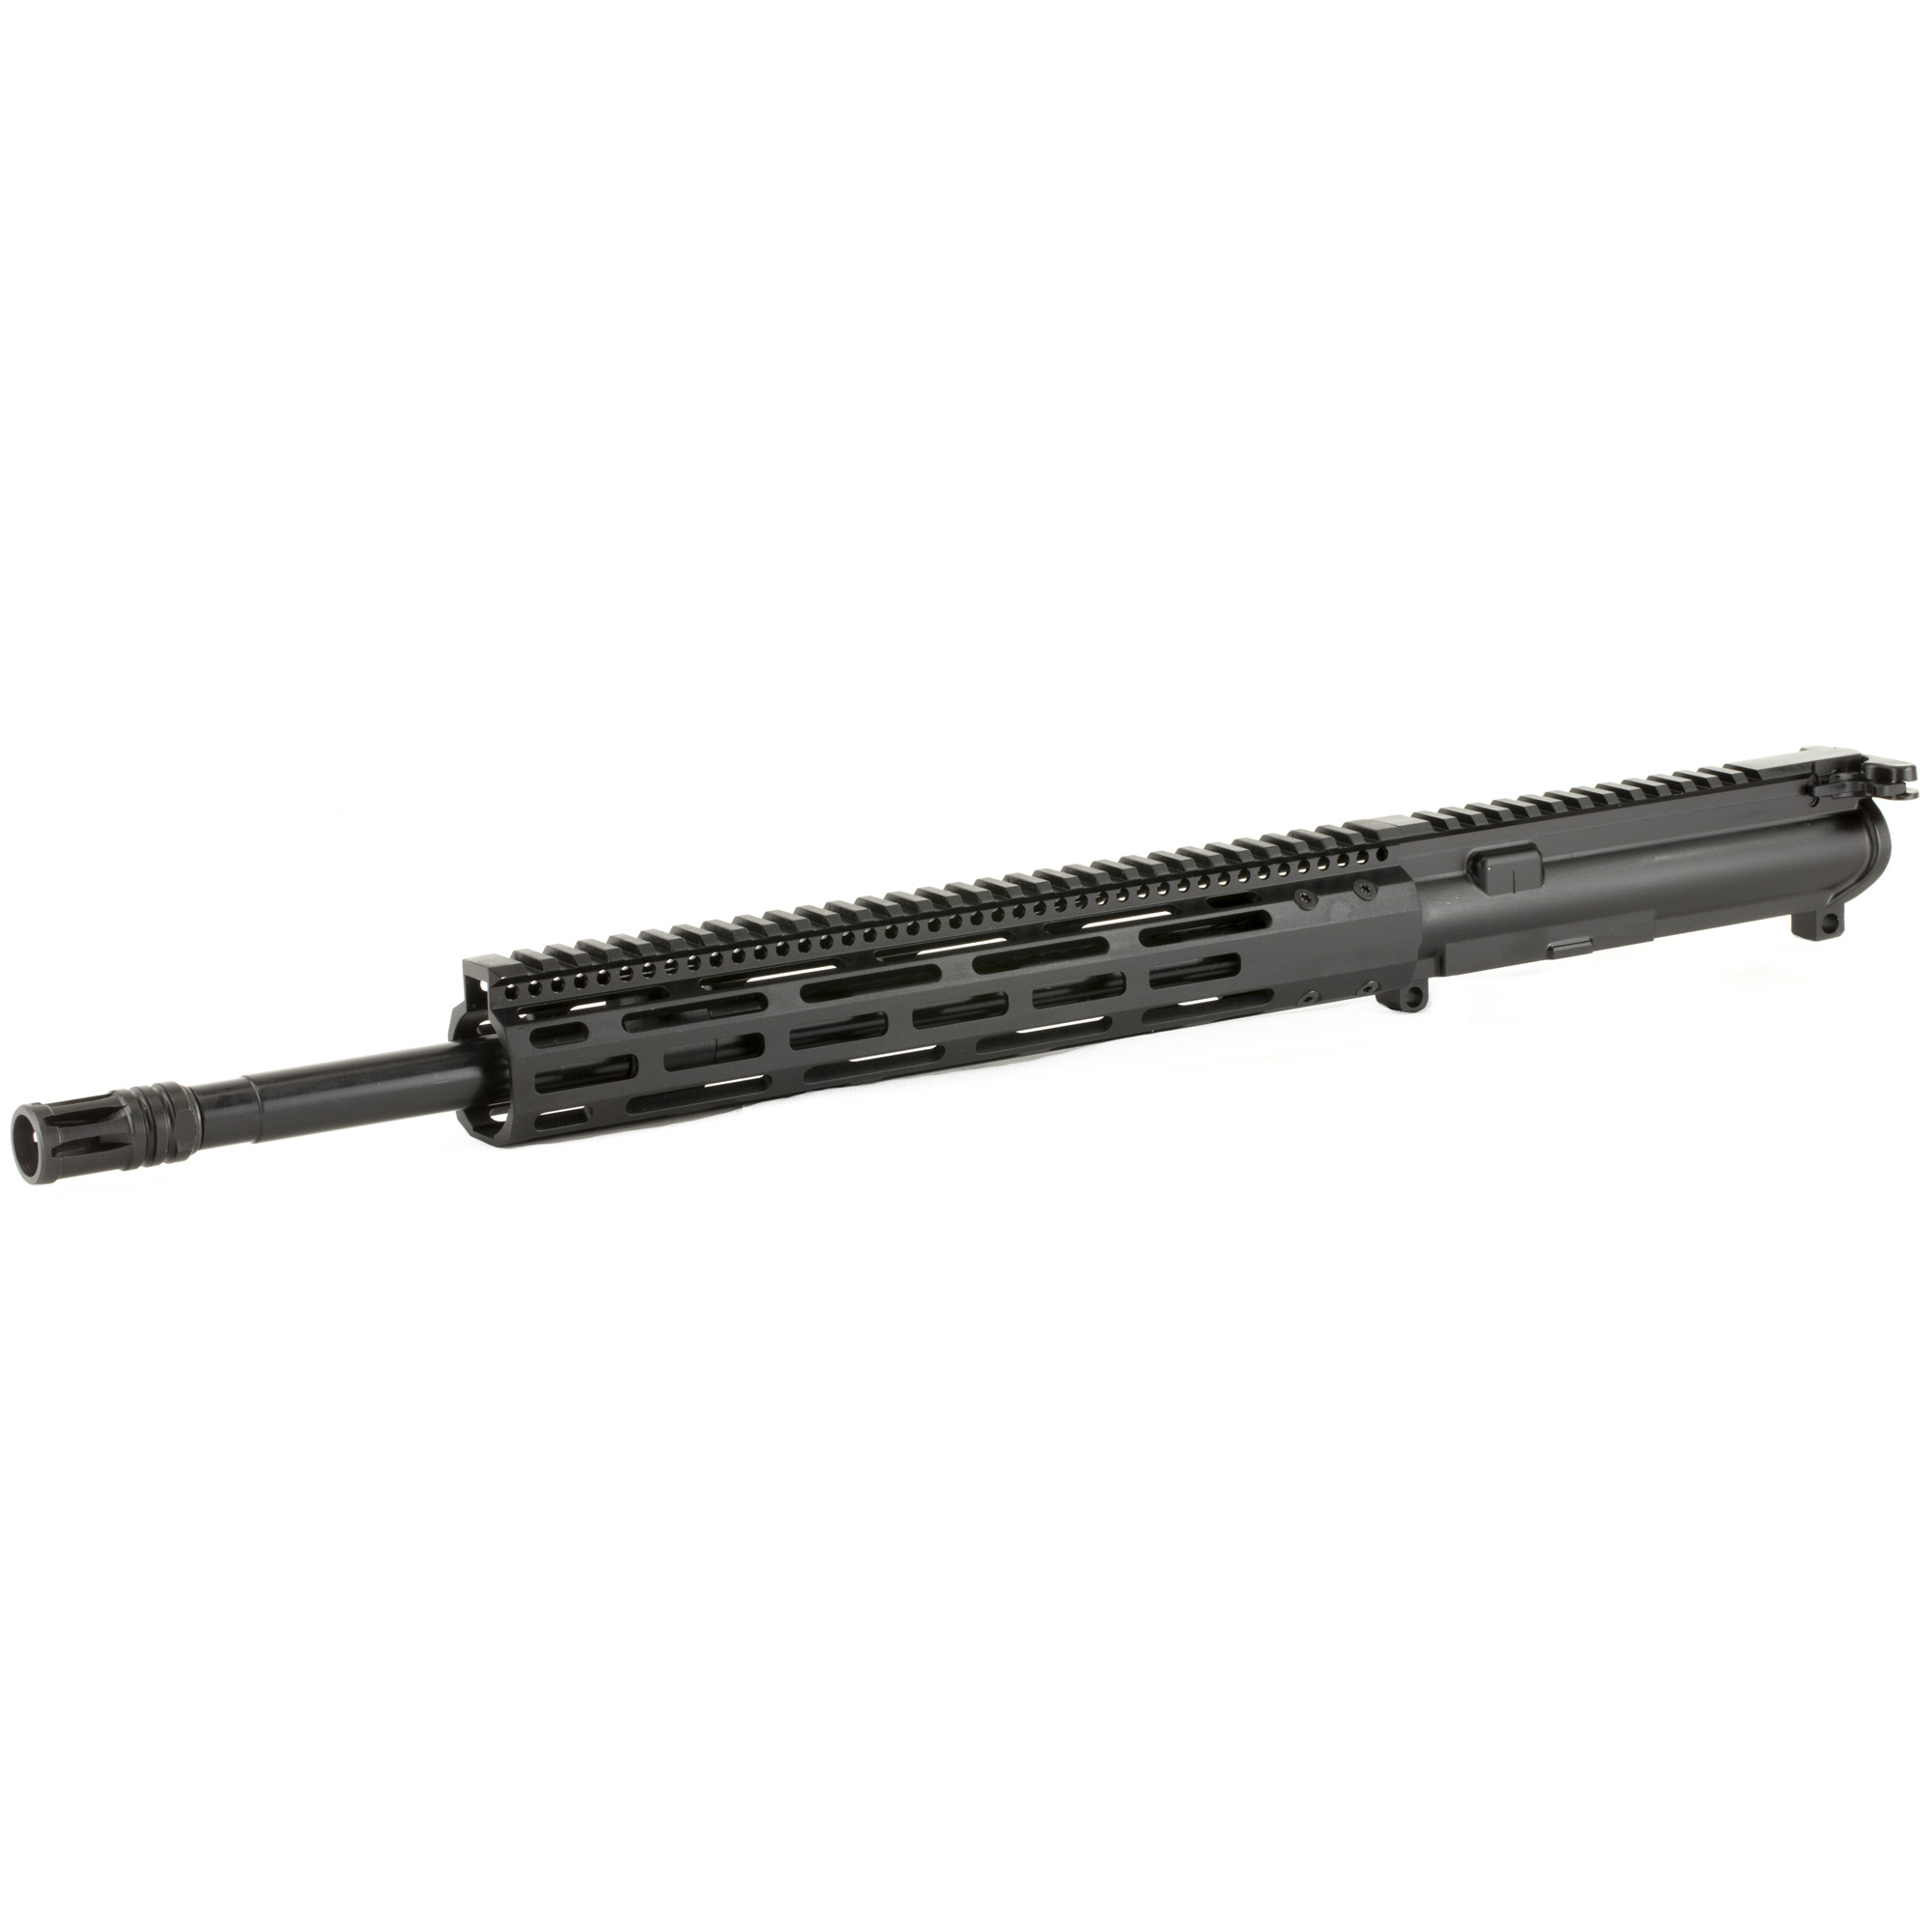 """The Radical Firearms 16"""" Socom profile 5.56mm is a complete MIL-STD upper ready to drop on any MIL-STD lower Receiver. Perfect for the novice or advanced shooter wanting to finish out that build and hit the range. Built with a 12"""" FCR free float rail system for increased accuracy and keeping your hands cool. No matter what your style of shooting is"""" Radical Firearms has you covered."""